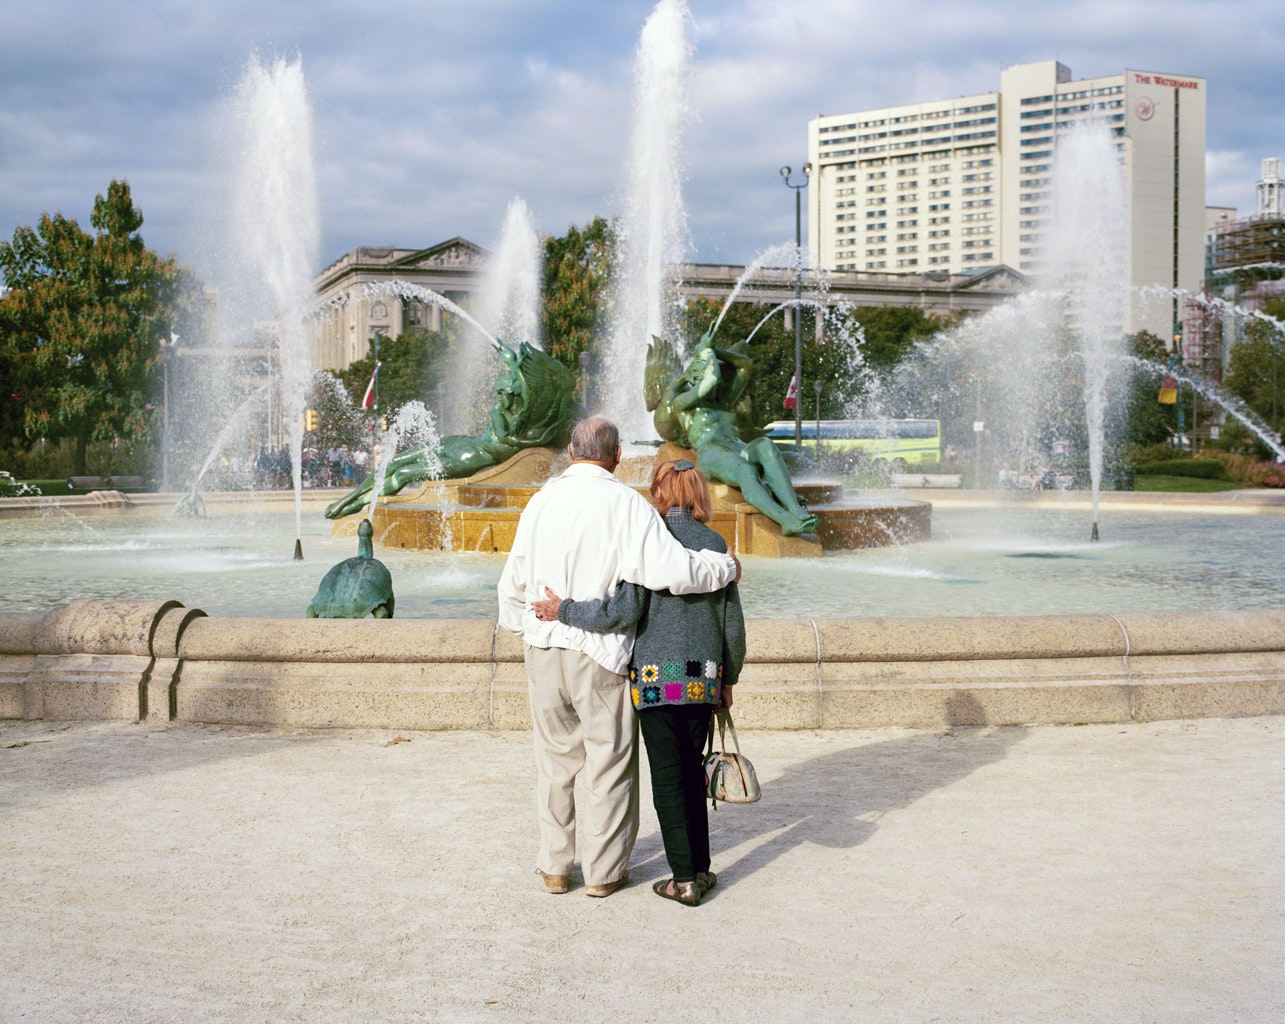 Philadelphia locals Seymour Seclow and Bernice Davis Katz, both 92 years old, have been a couple for one year.